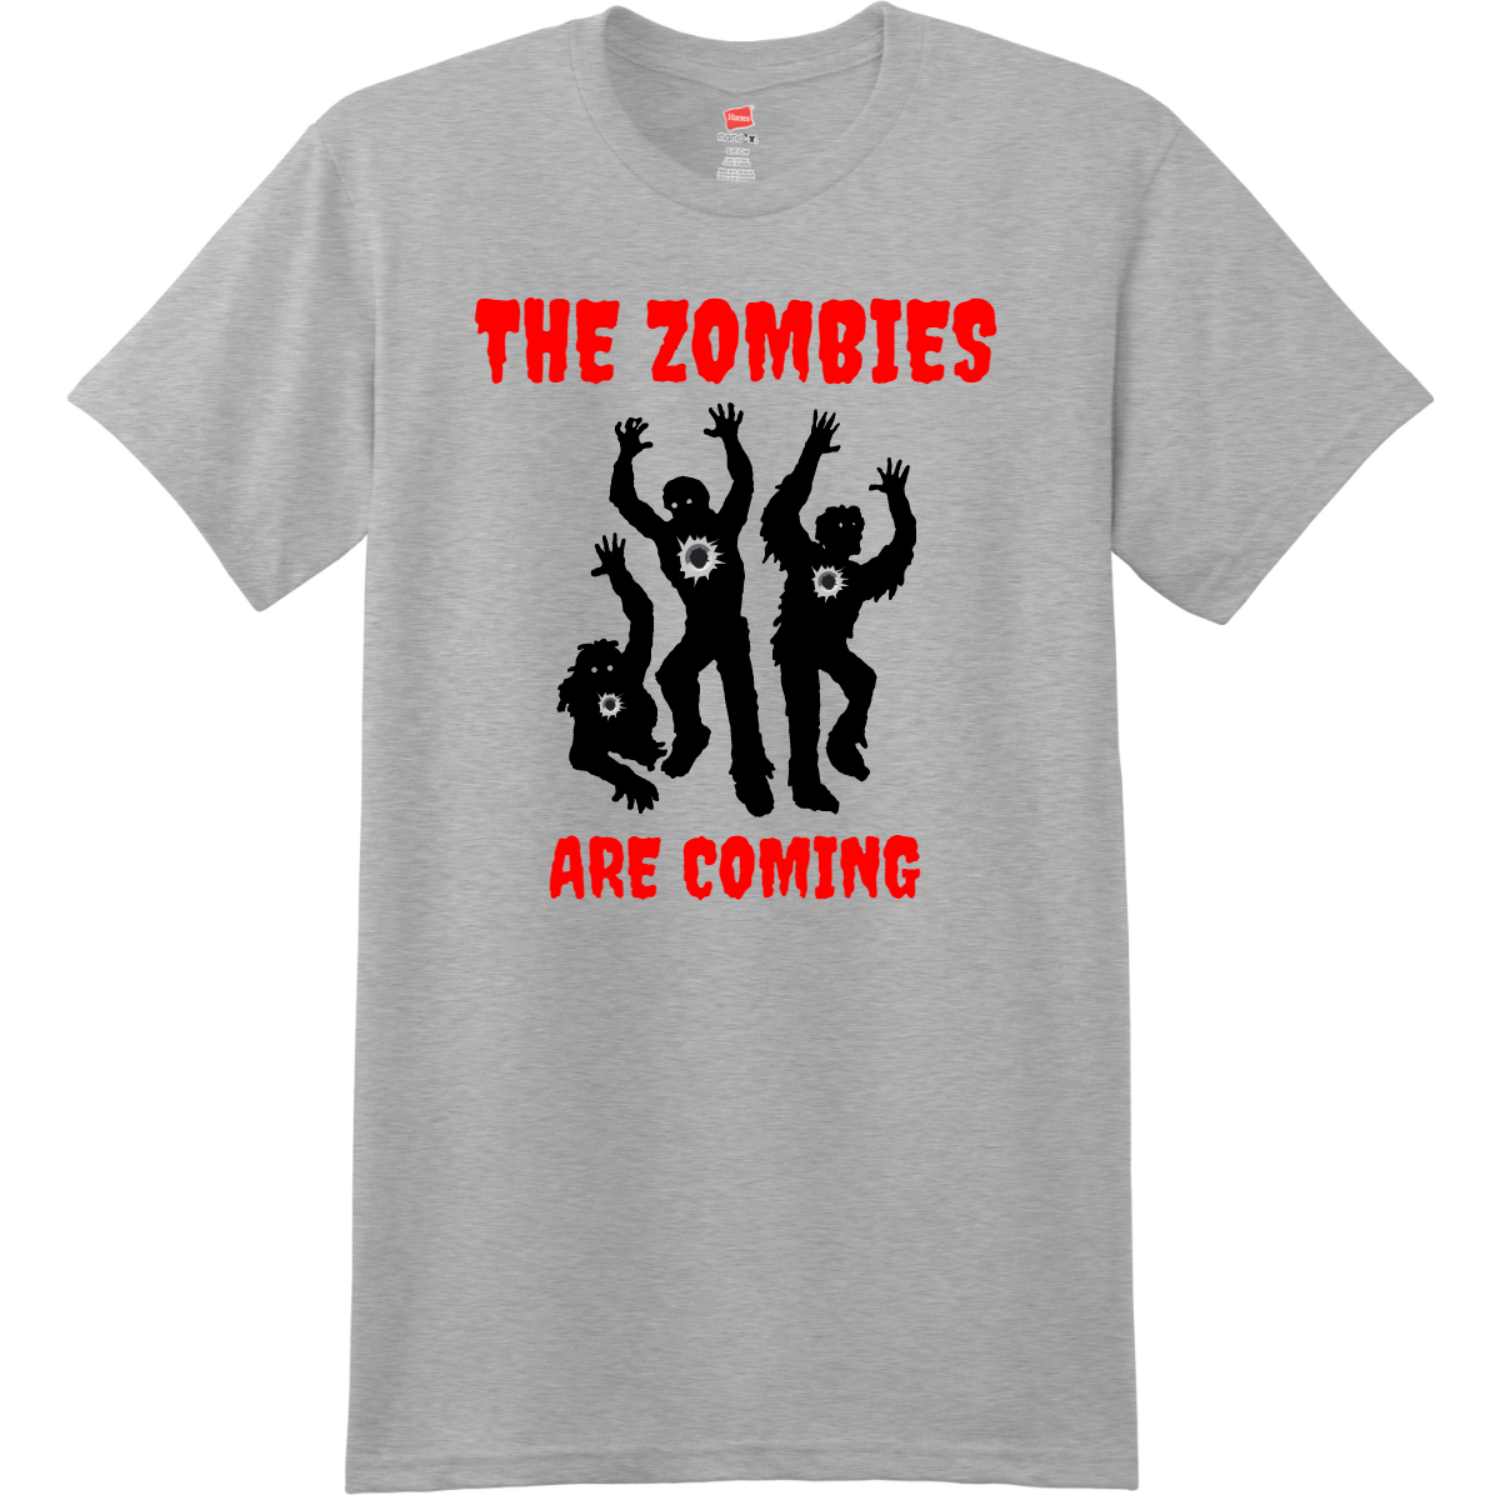 The Zombies Are Coming T Shirt Light Steel Hanes Nano 4980 Ringspun Cotton T Shirt